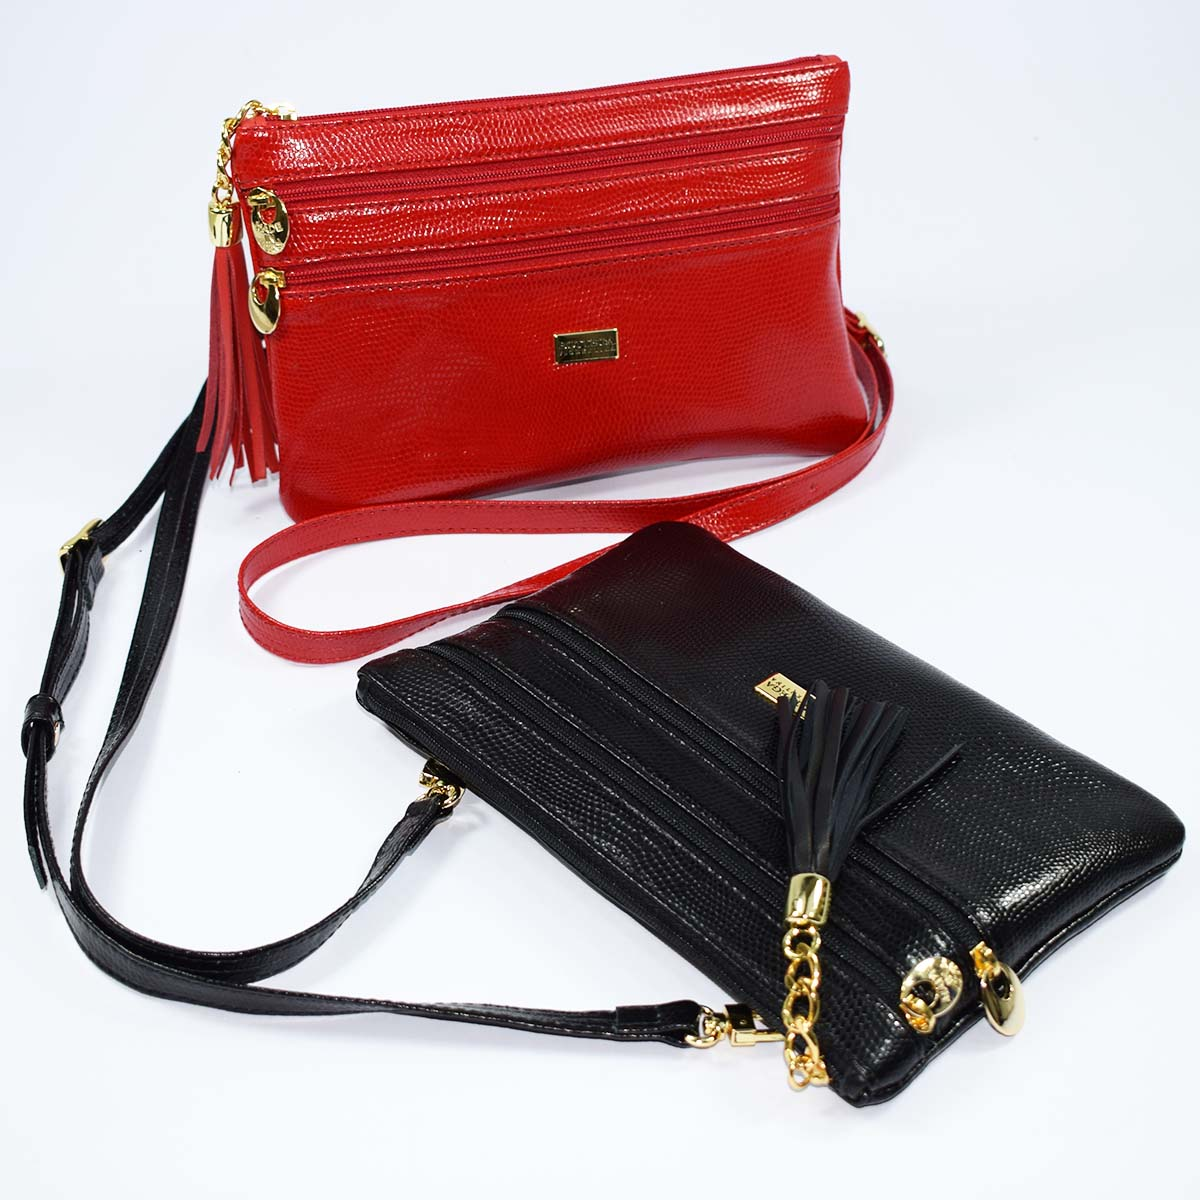 1777 MEDIUM RECTANGULAR SHOULDER BAG by Bottega Fiorentina